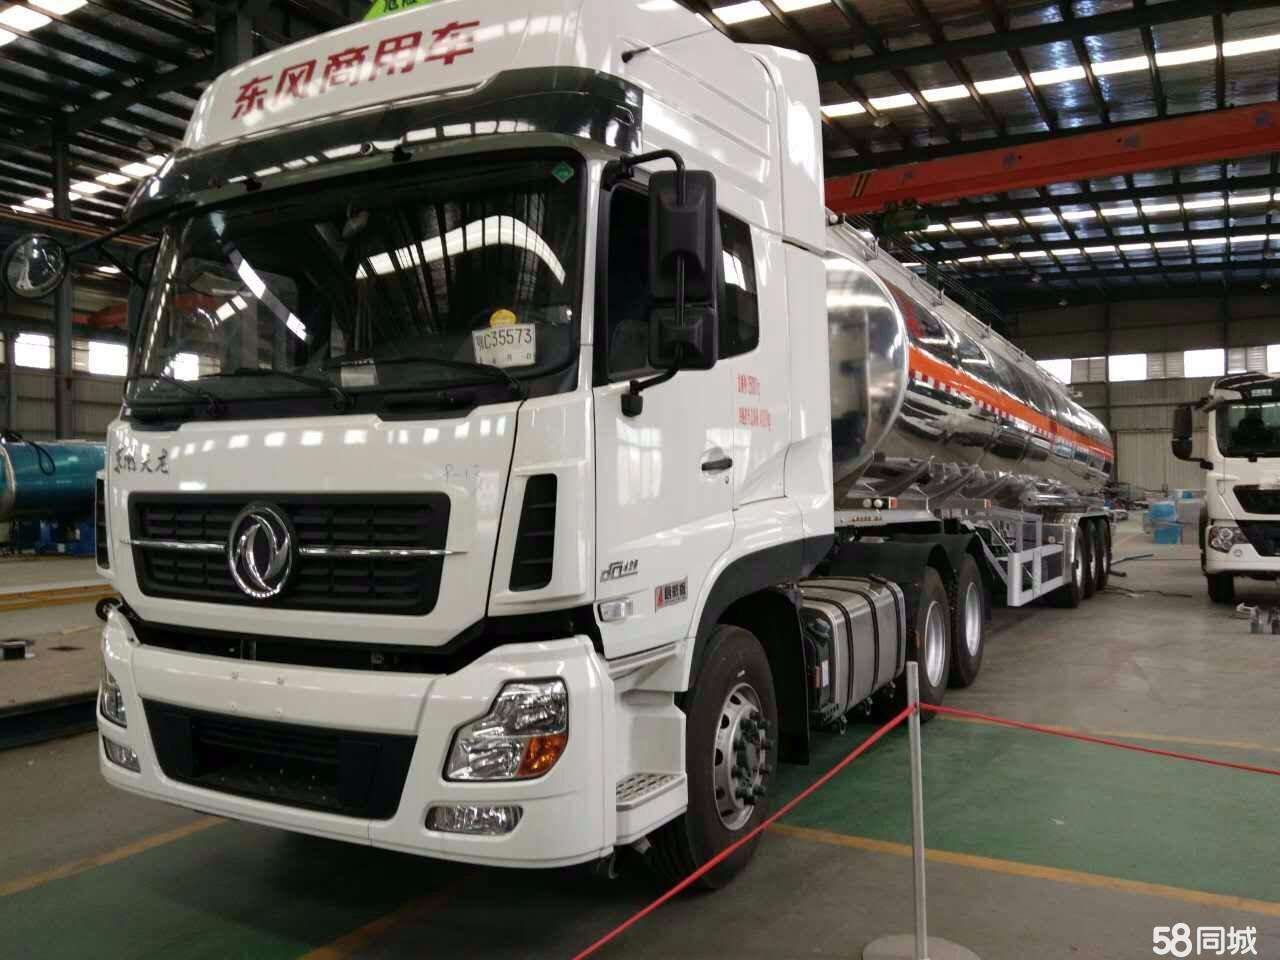 These Are The Pictures For All Dongfeng Truck We Have All The